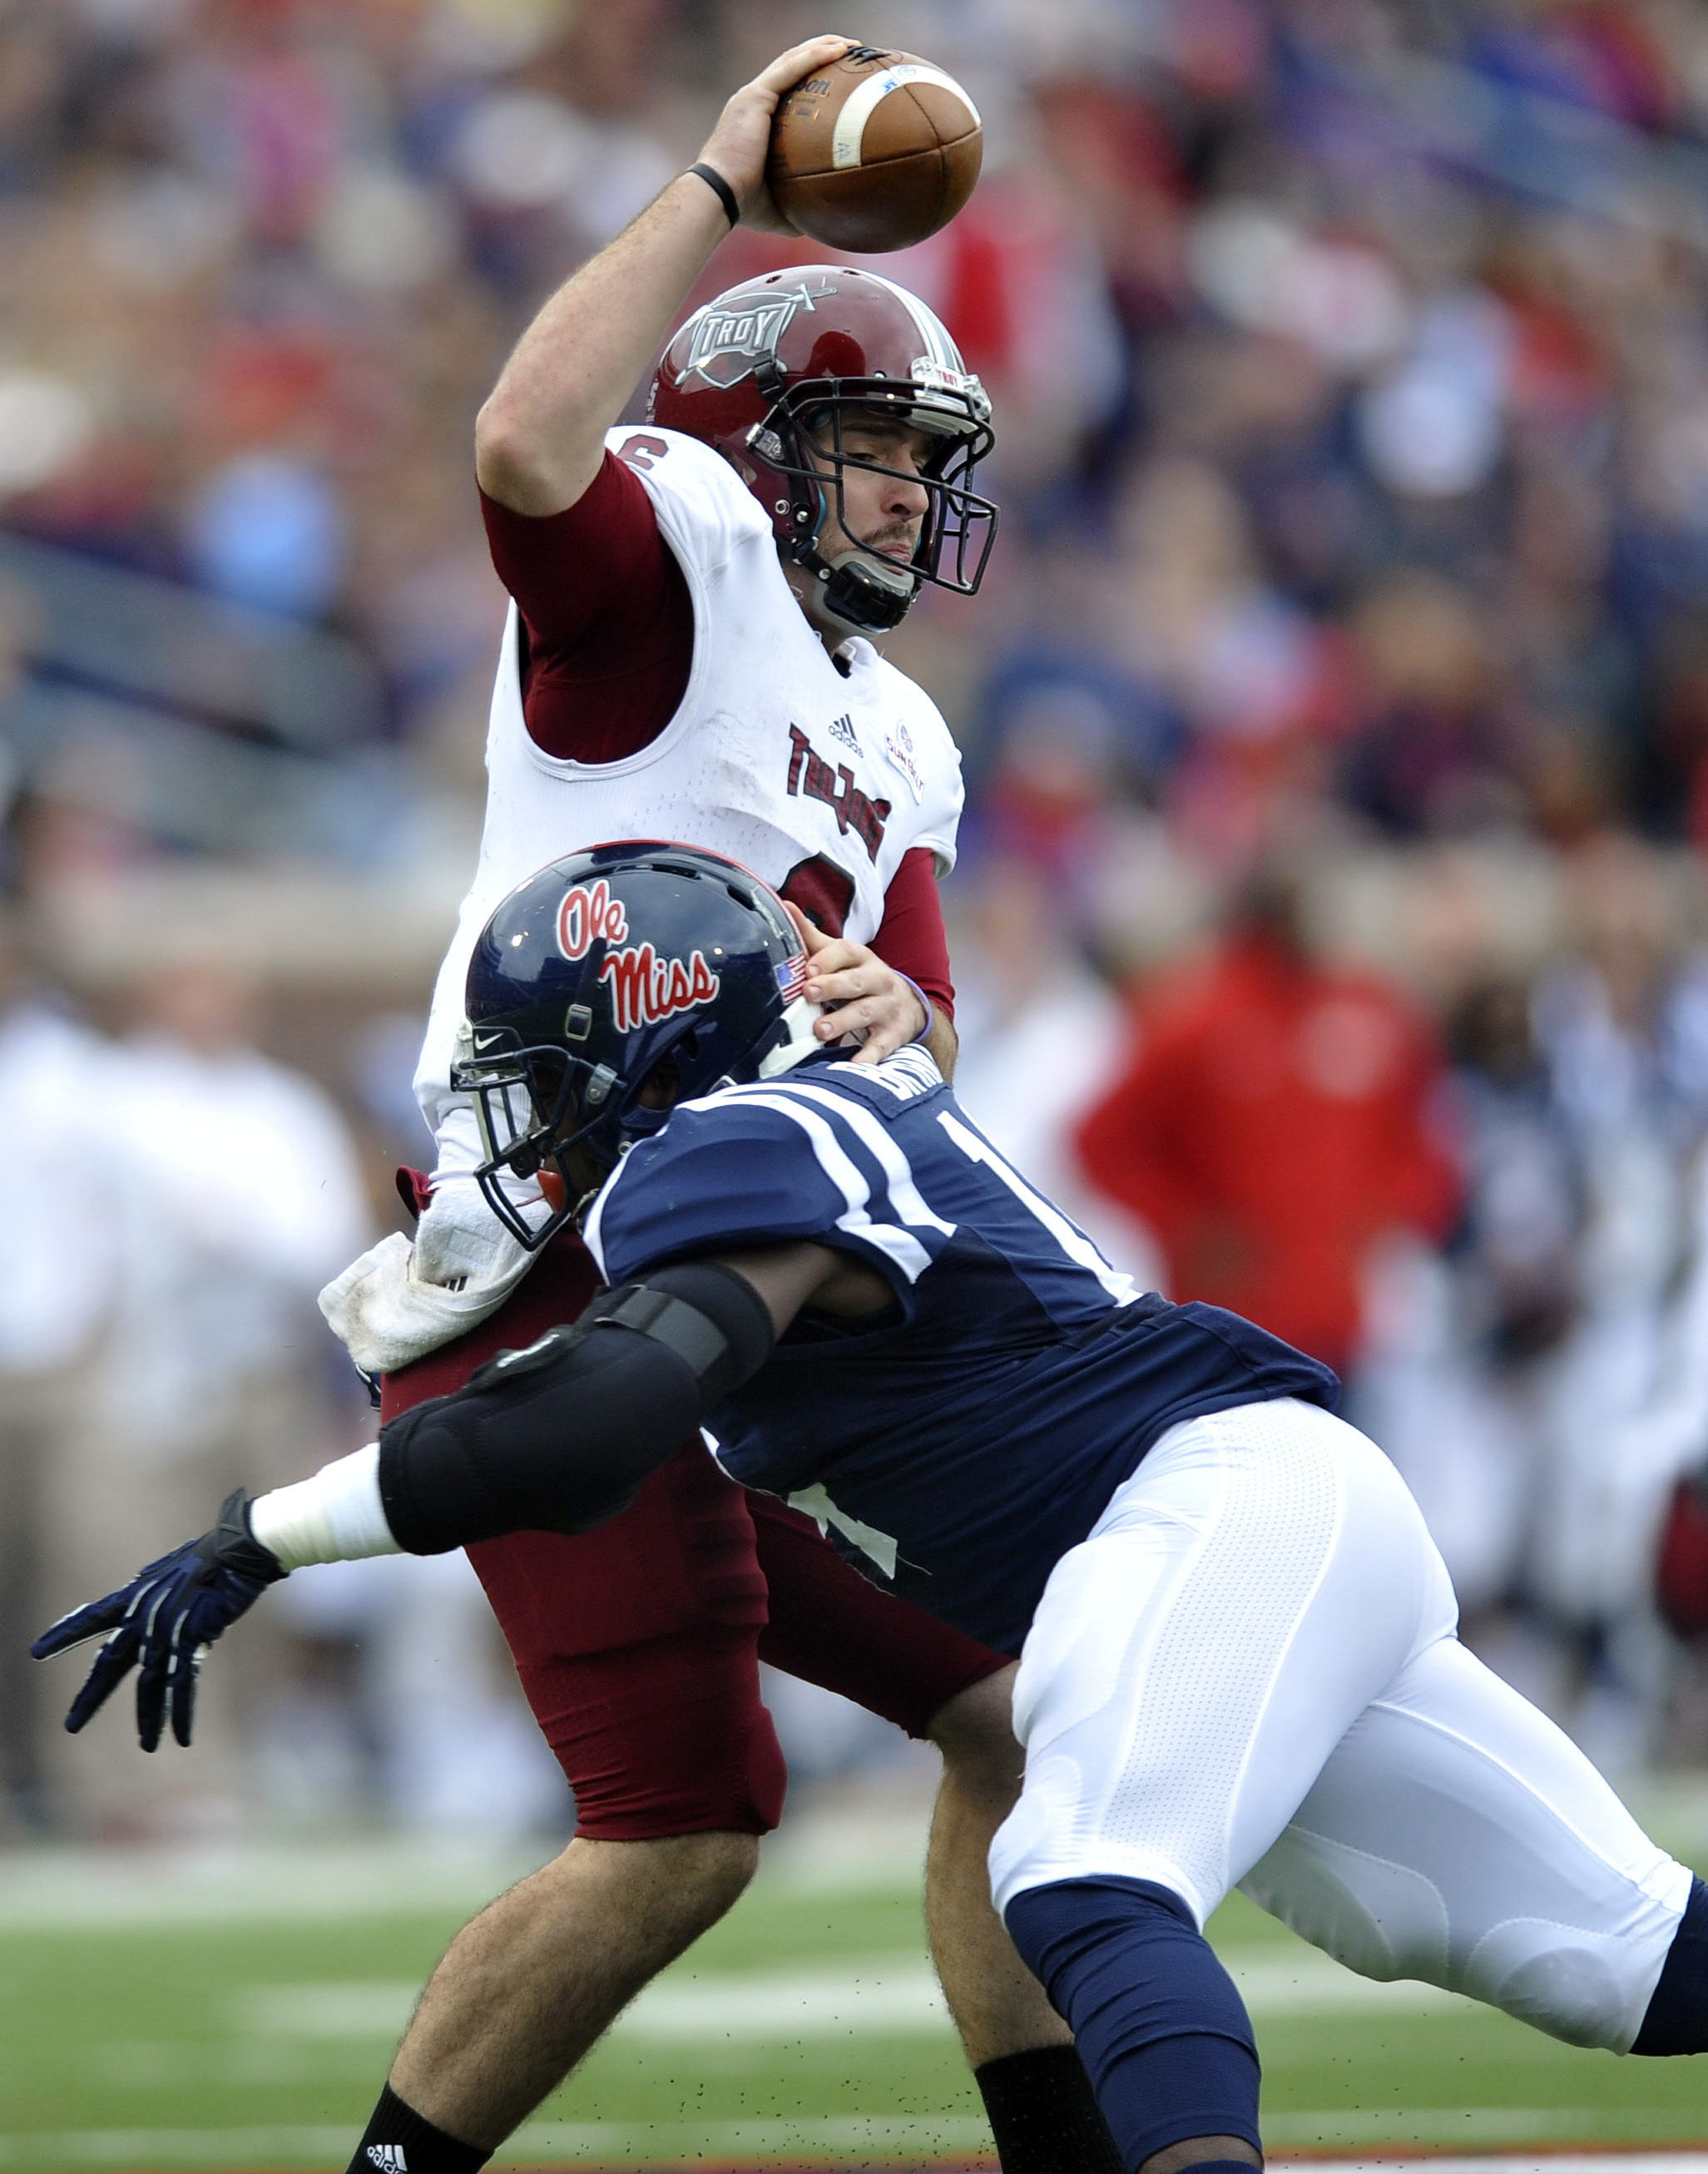 Mississippi linebacker Serderius Bryant (14) sacks Troy quarterback Corey Robinson (6) during an NCAA college football game in Oxford, Miss., Saturday, Nov. 16, 2013